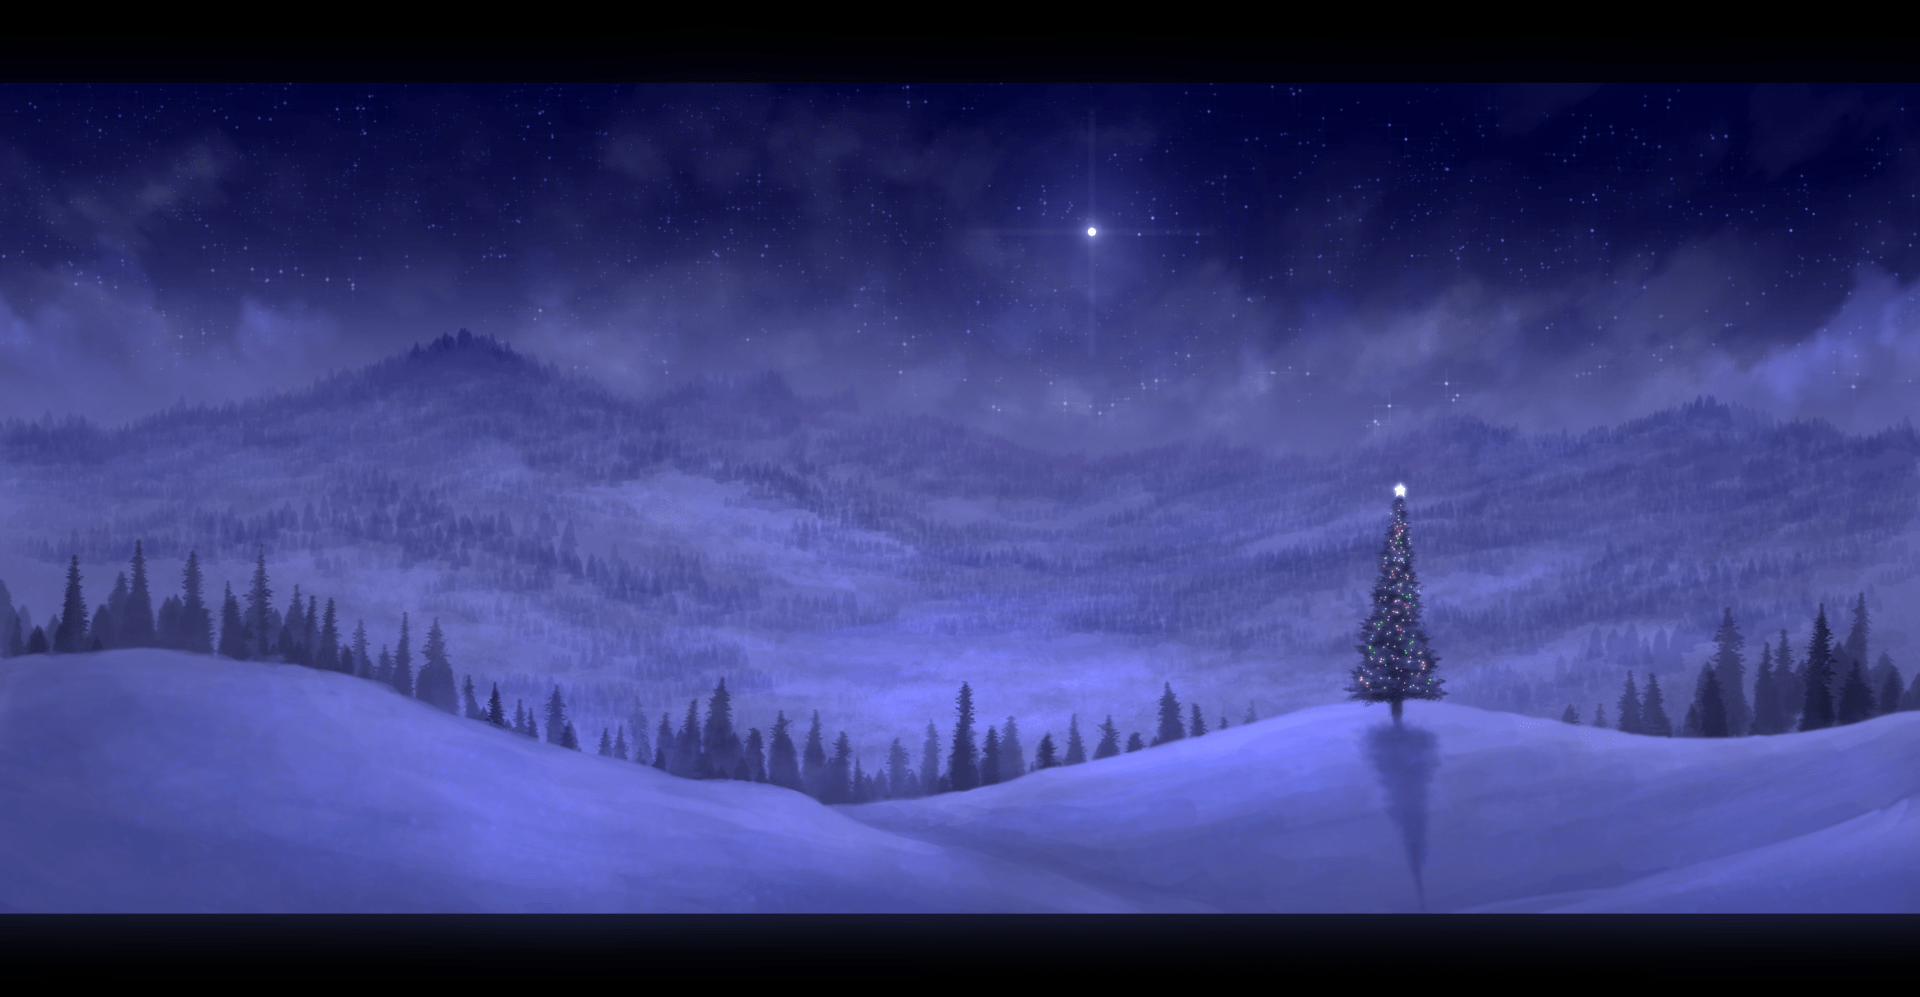 Free Falling Snow Wallpaper Download The Prophecy Full Hd Wallpaper And Background Image